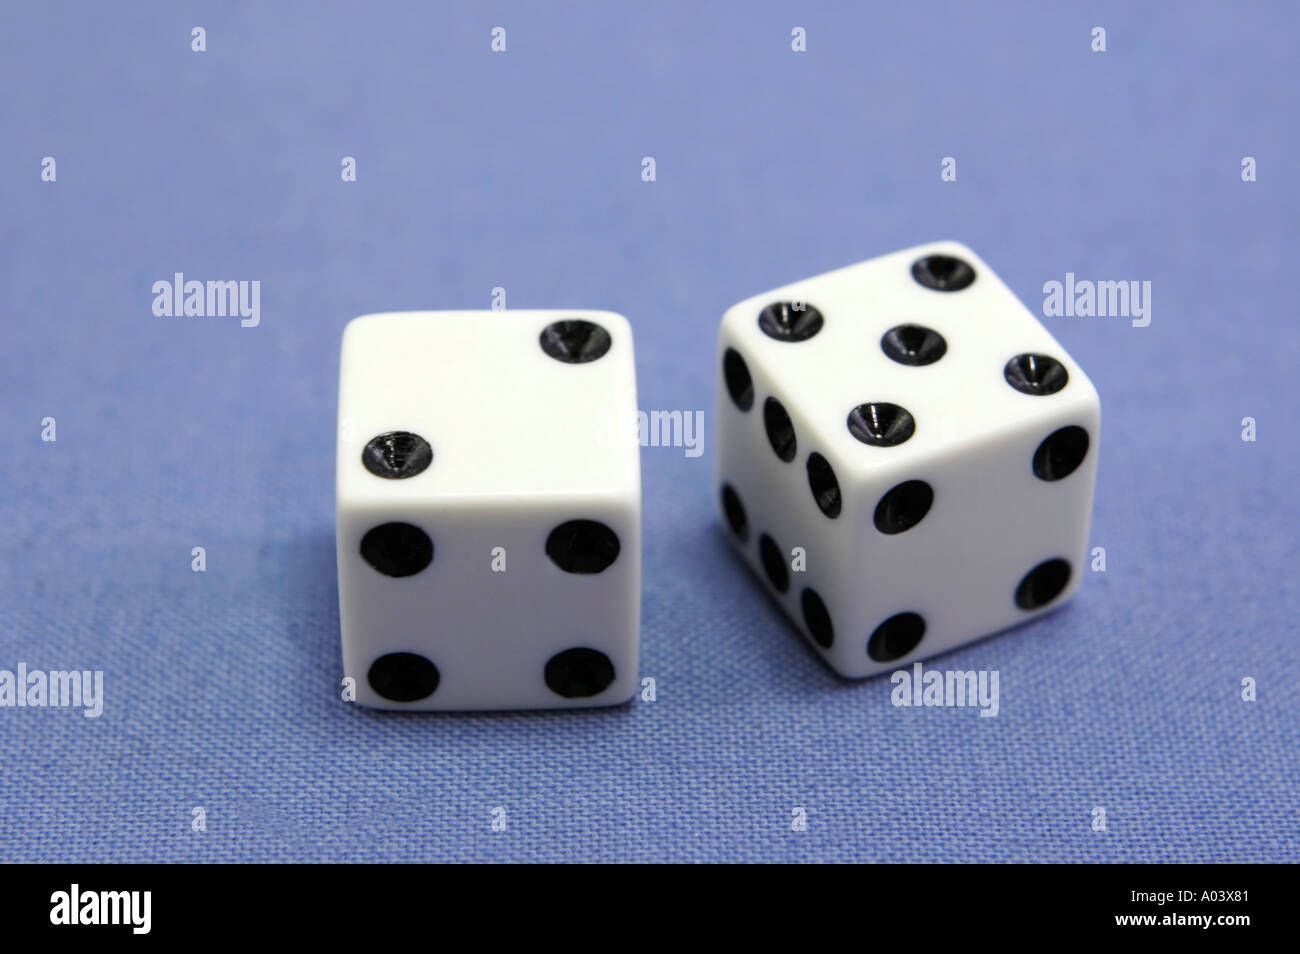 Pair of dice showing the number 7 seven - Stock Image